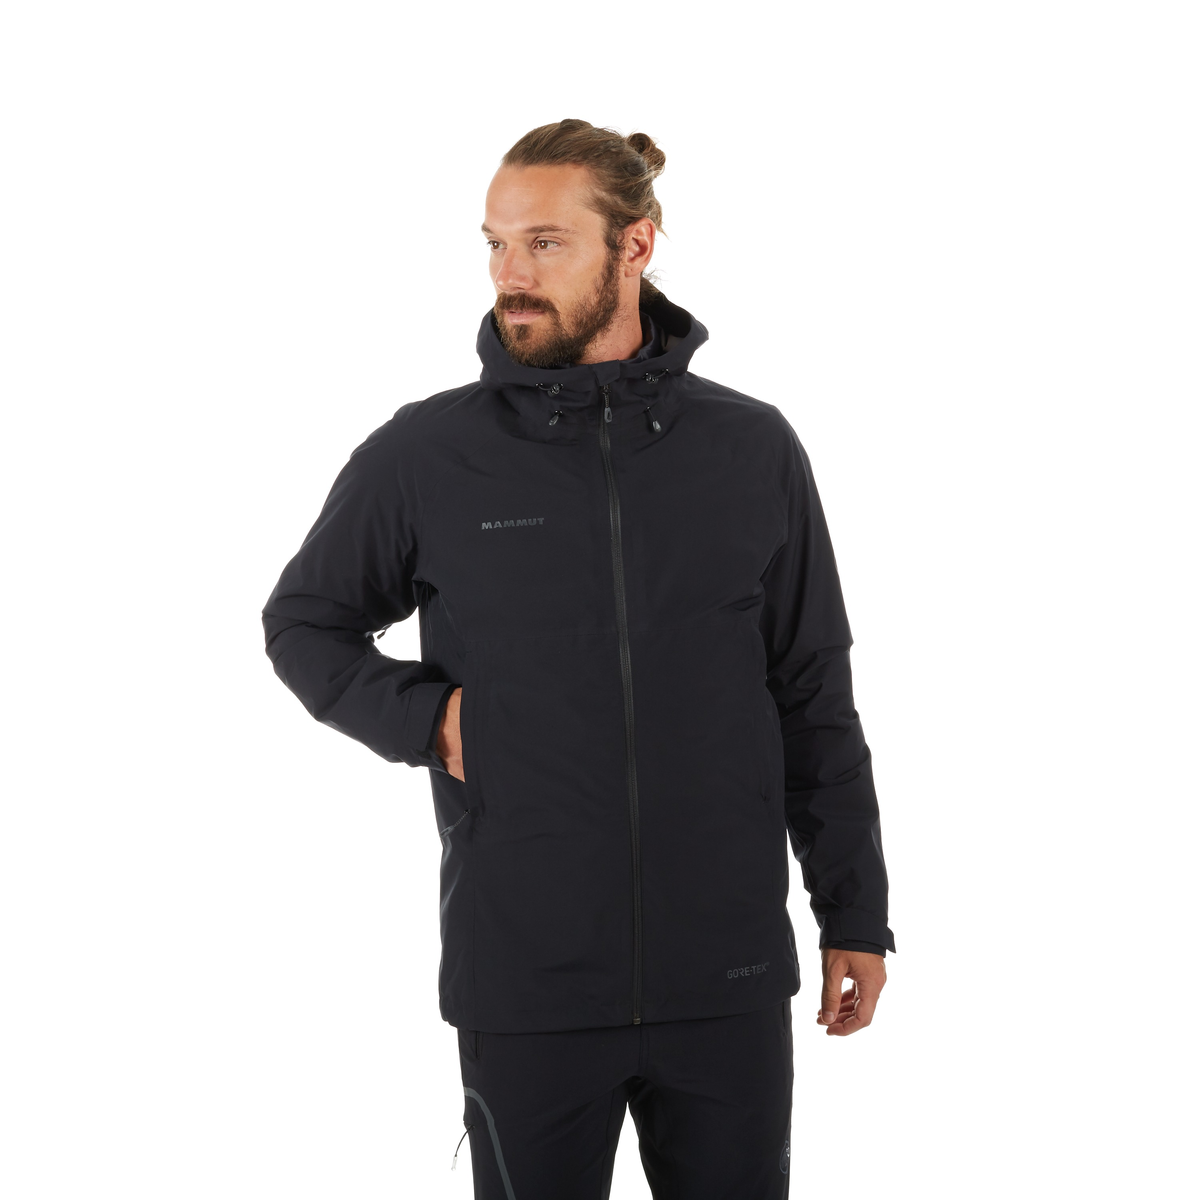 finest selection 43235 7653e Convey 3 in 1 HS Hooded Jacket Men